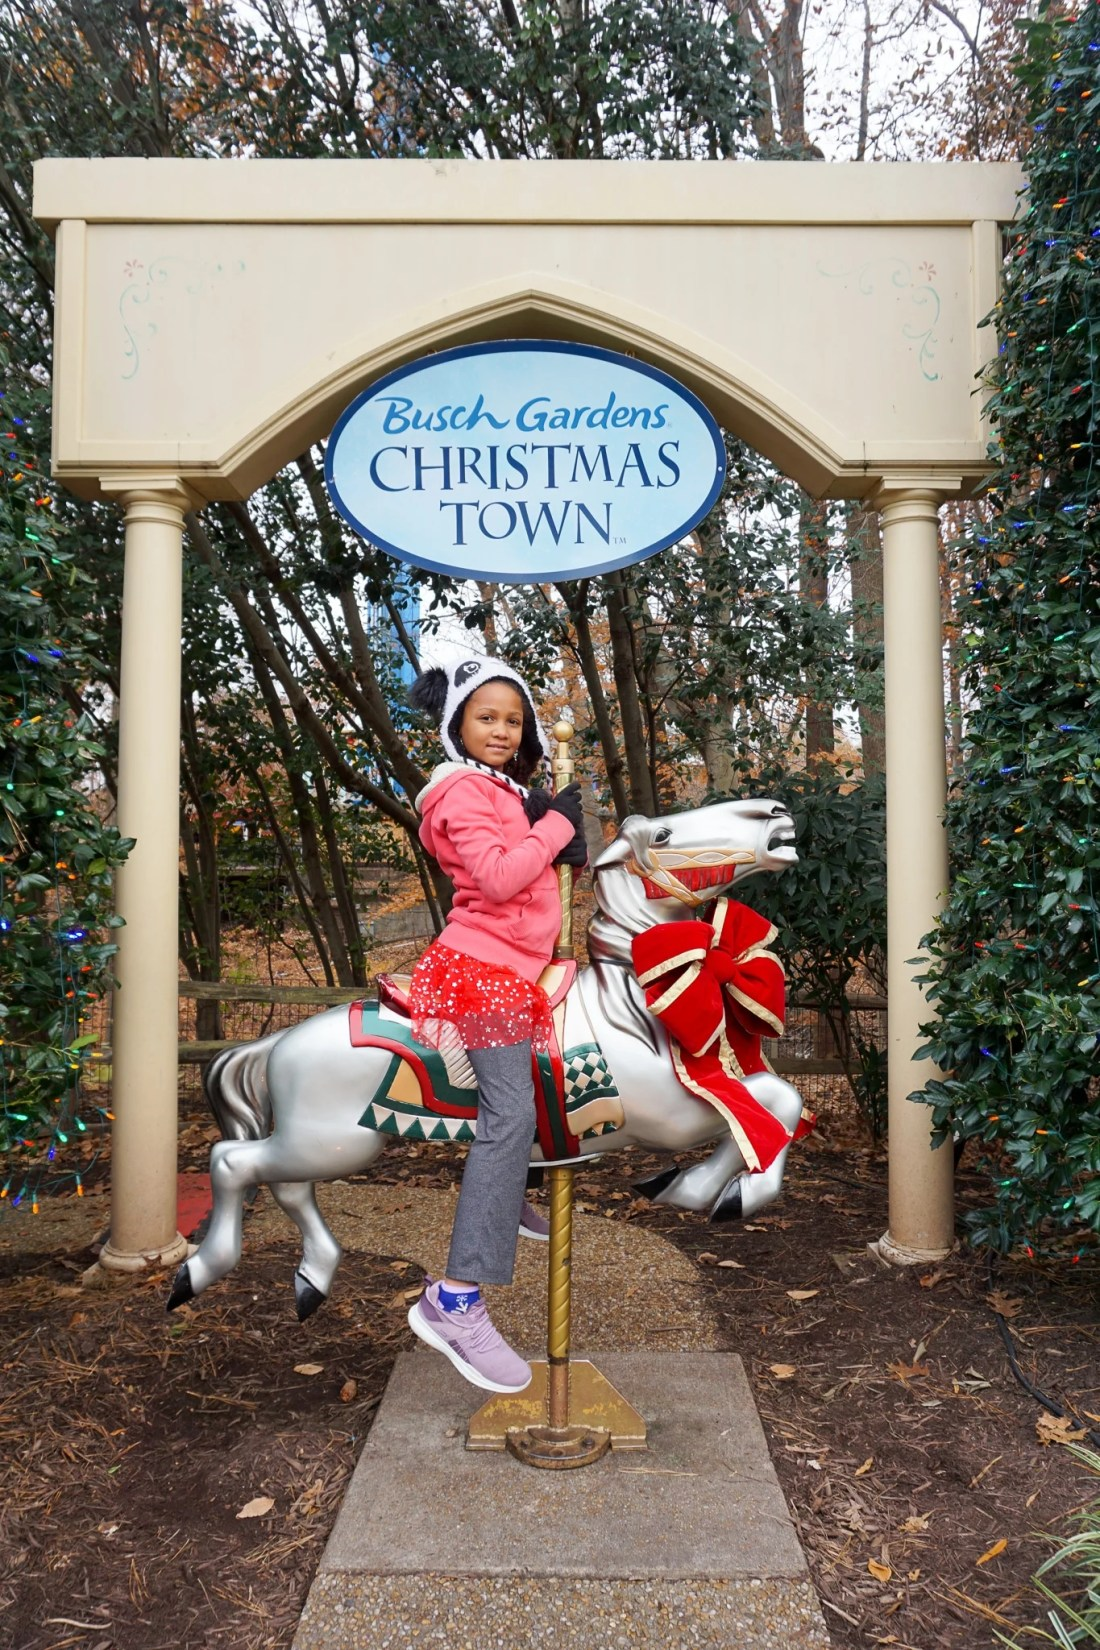 Girl On Carosel Horse 15 Instagram Worthy Walls Christmas Town Busch Gardens. Instagram Worthy Walls and Locations around Busch Gardens Christmas Town in Williamsburg Virginia.